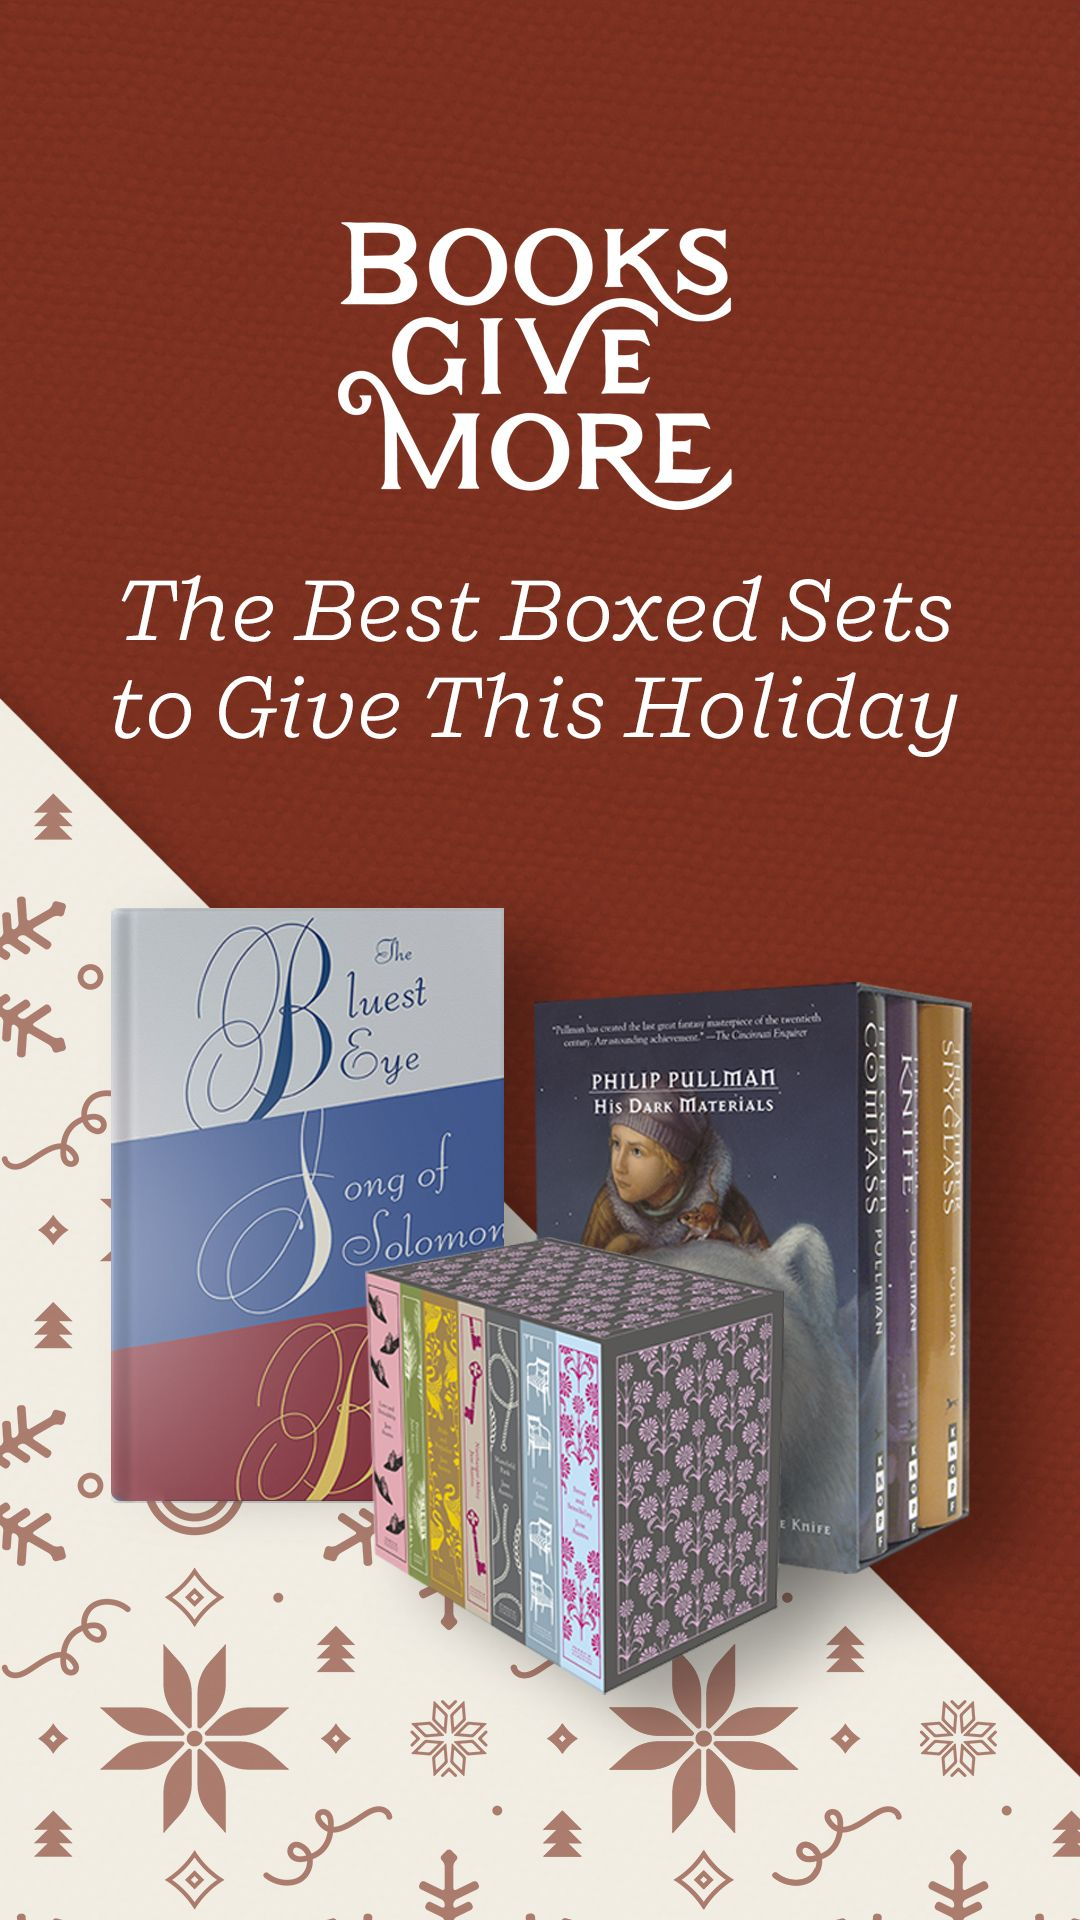 Save this list of the best book boxed sets to give this holiday. From collections of novels by beloved authors including Toni Morrison, Jane Austen, J.R.R. Tolkein, and John Green, to exquisite sets of hardcover classics, to the complete Mastering the Art of French Cooking by Julia Child, find the perfect books for readers of every age and taste.